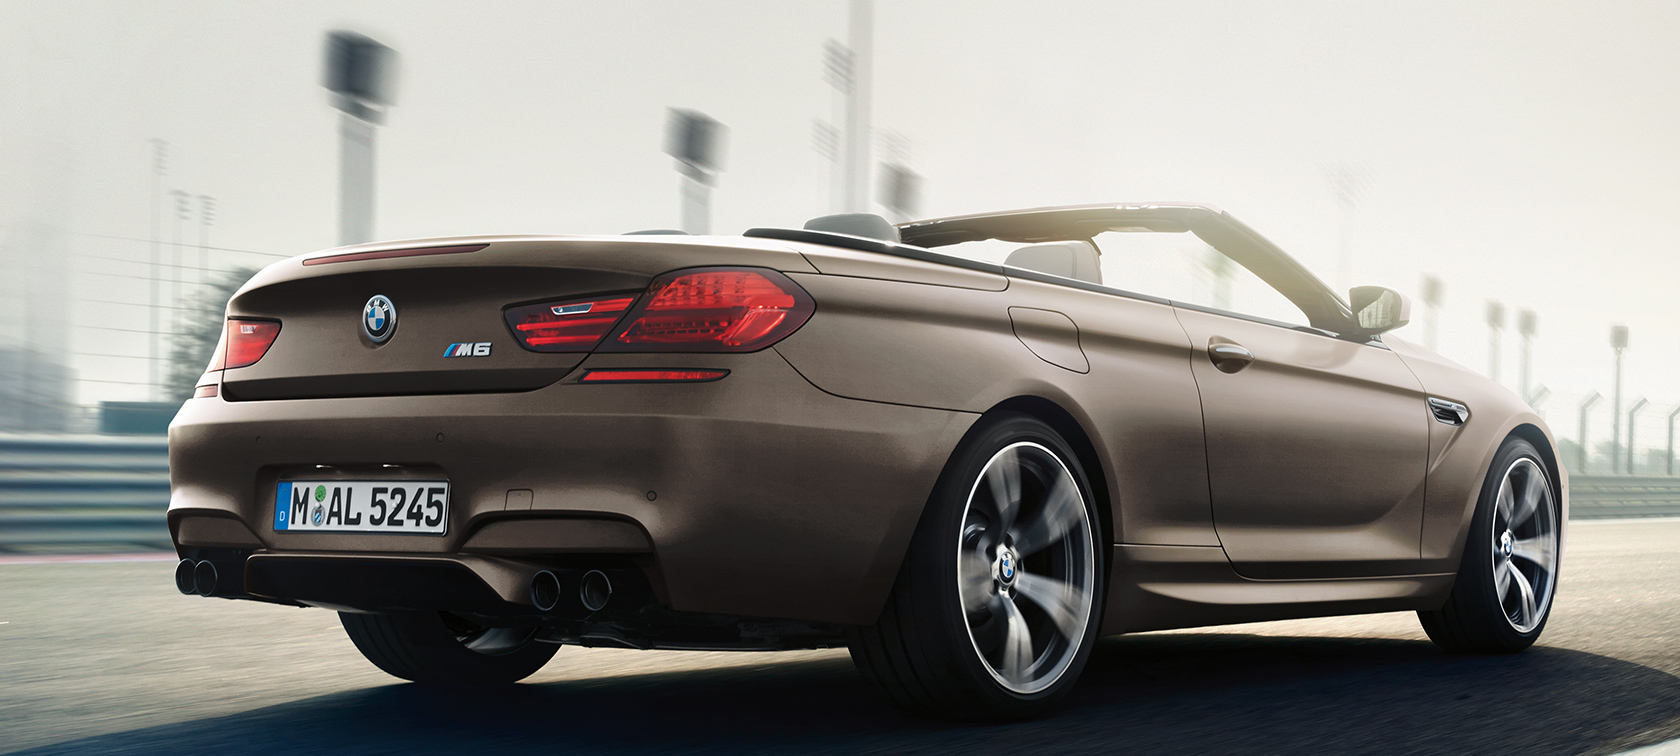 bmw m6 cabriolet luxury convertible car bmw canada. Black Bedroom Furniture Sets. Home Design Ideas